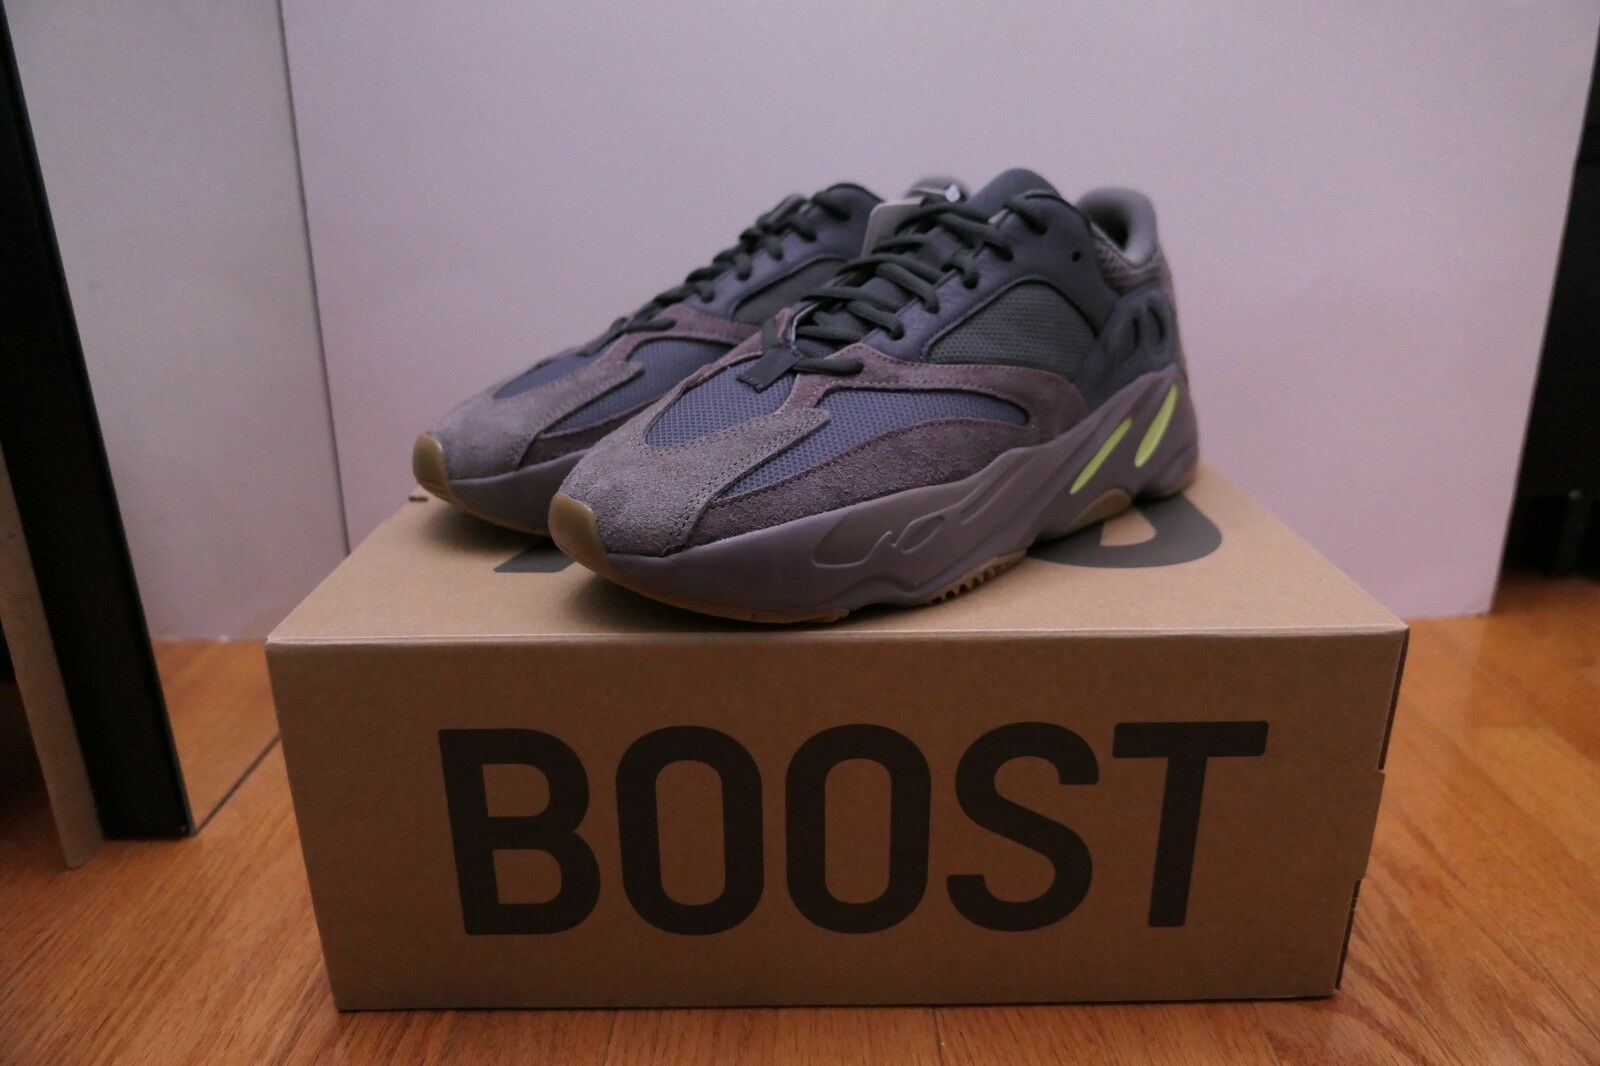 new product 0b785 1b5a6 Adidas Yeezy Boost 700 Size 10.5 Mauve Confirmed Box Logo NMD UltraBoost